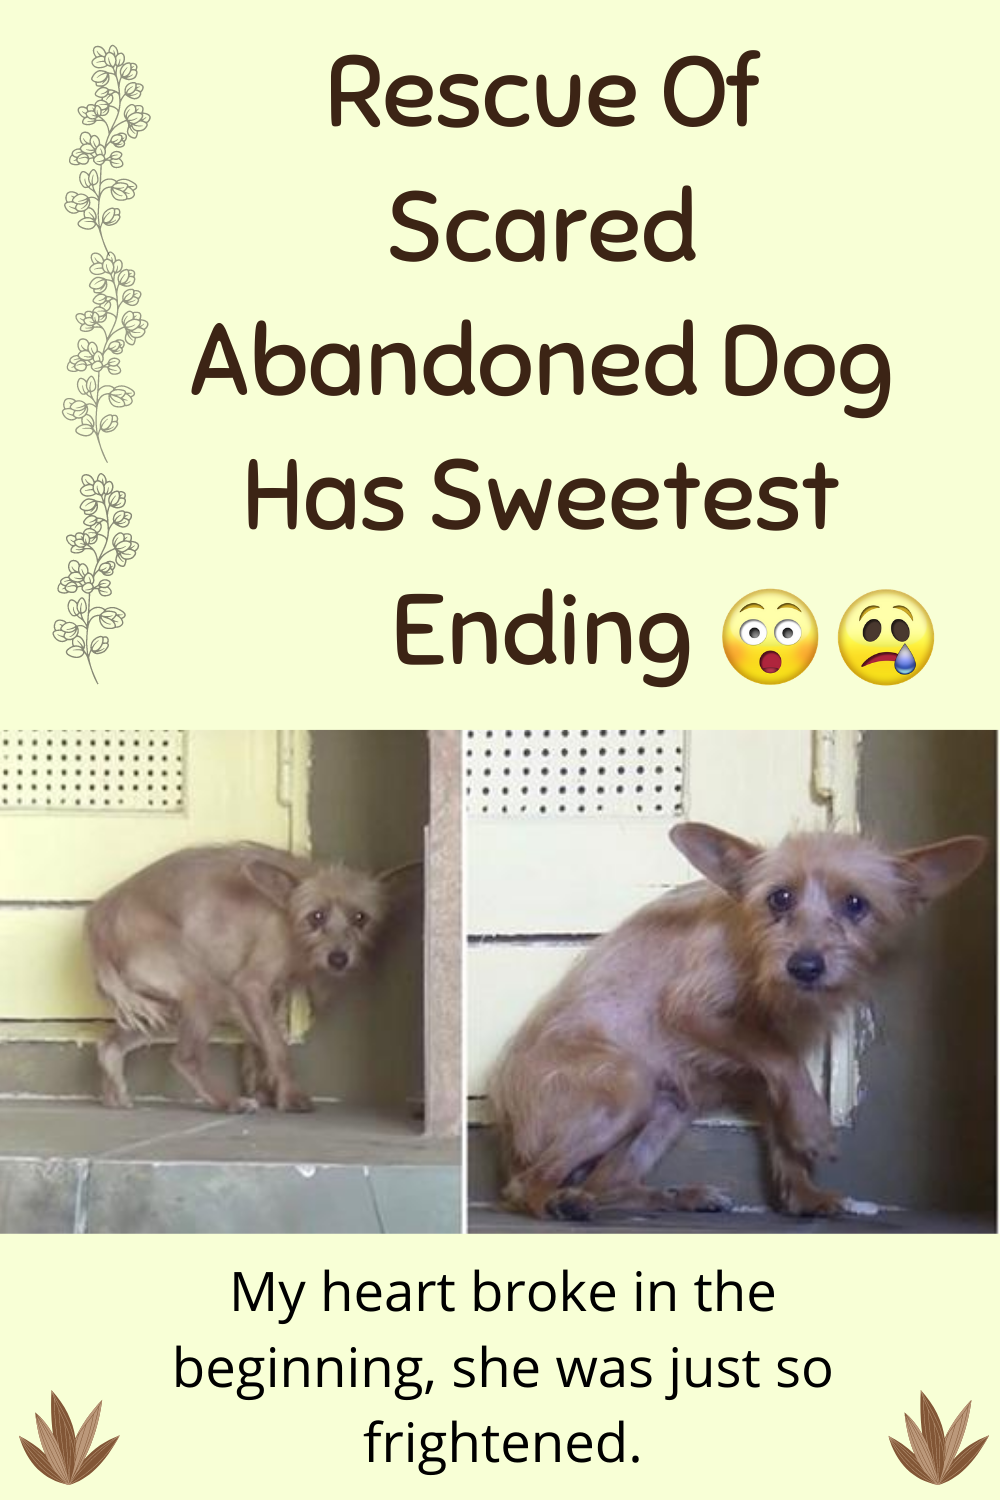 Rescue Of Terrified Abandoned Dog Grabs Hearts Rescue Dogs Dog Names